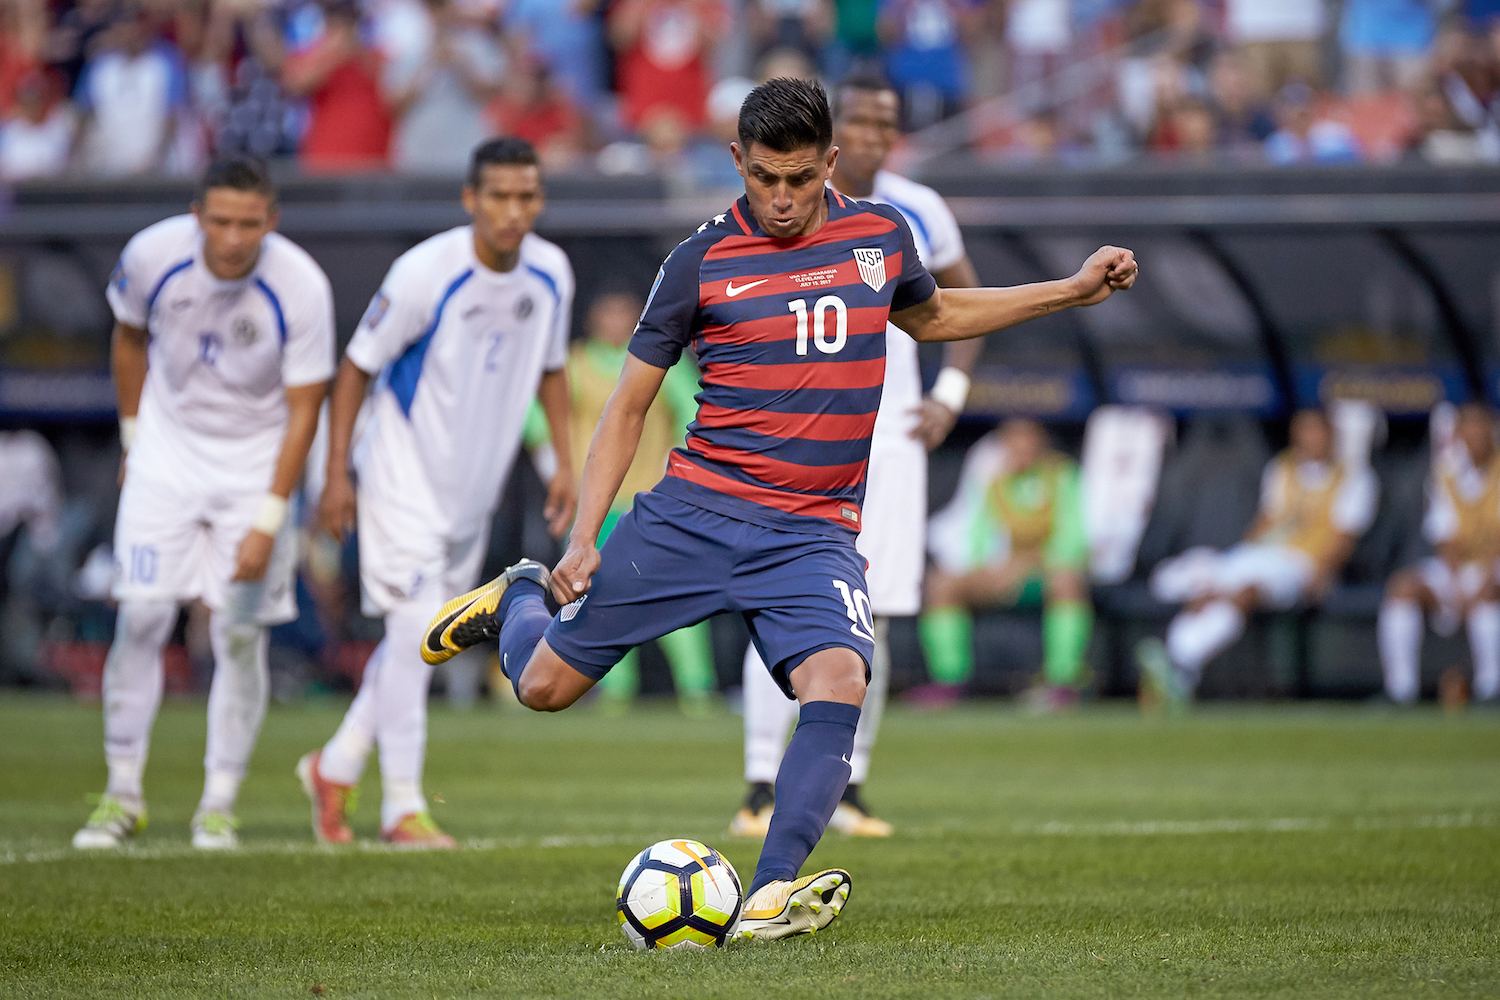 United States midfielder Joe Corona